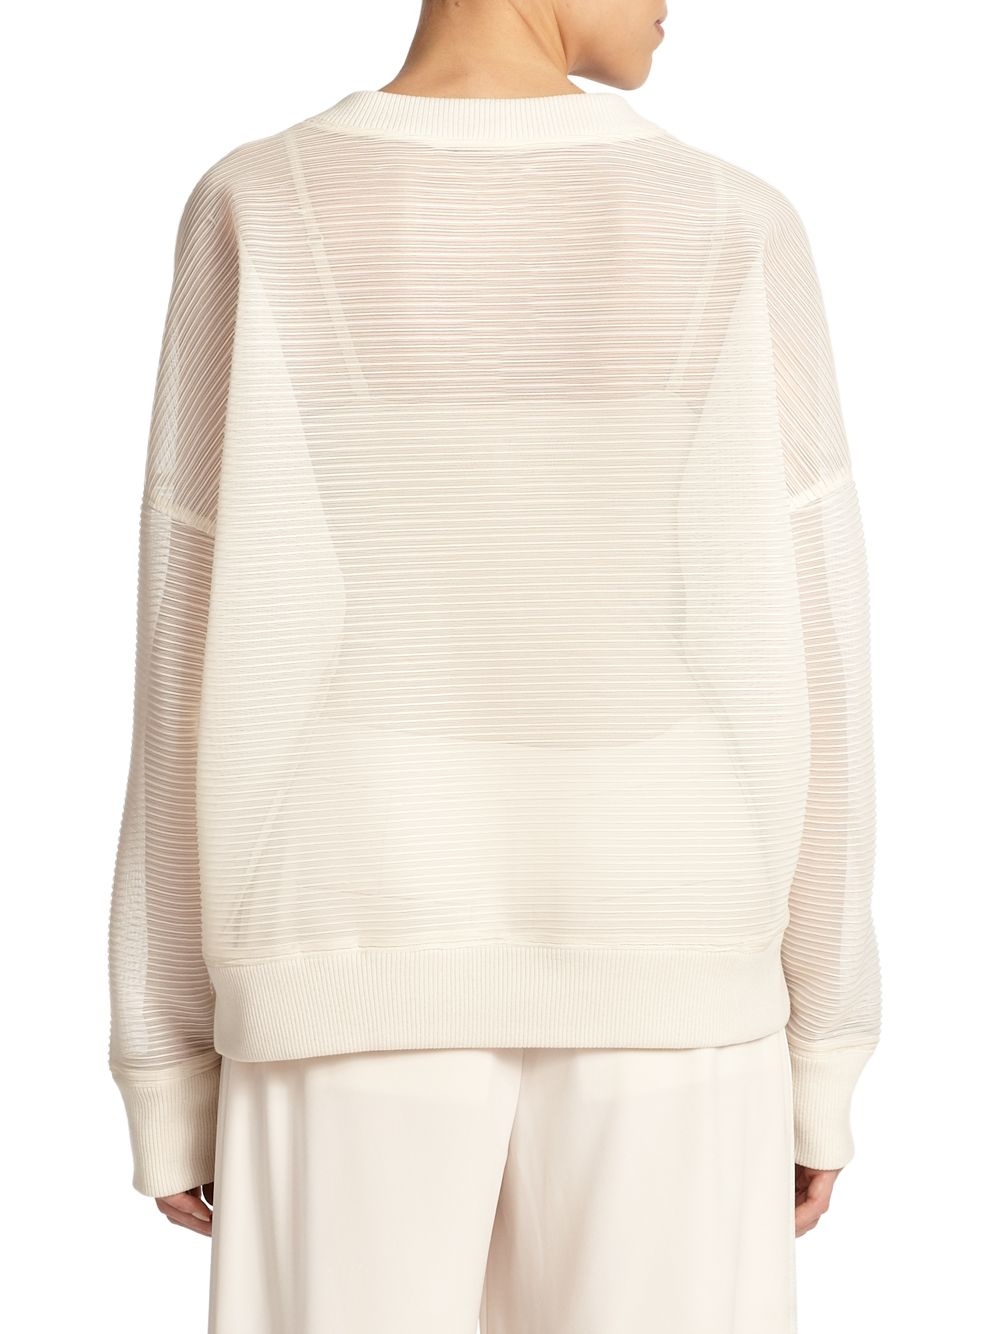 Dkny Oversized Ribbed Sweater in White | Lyst